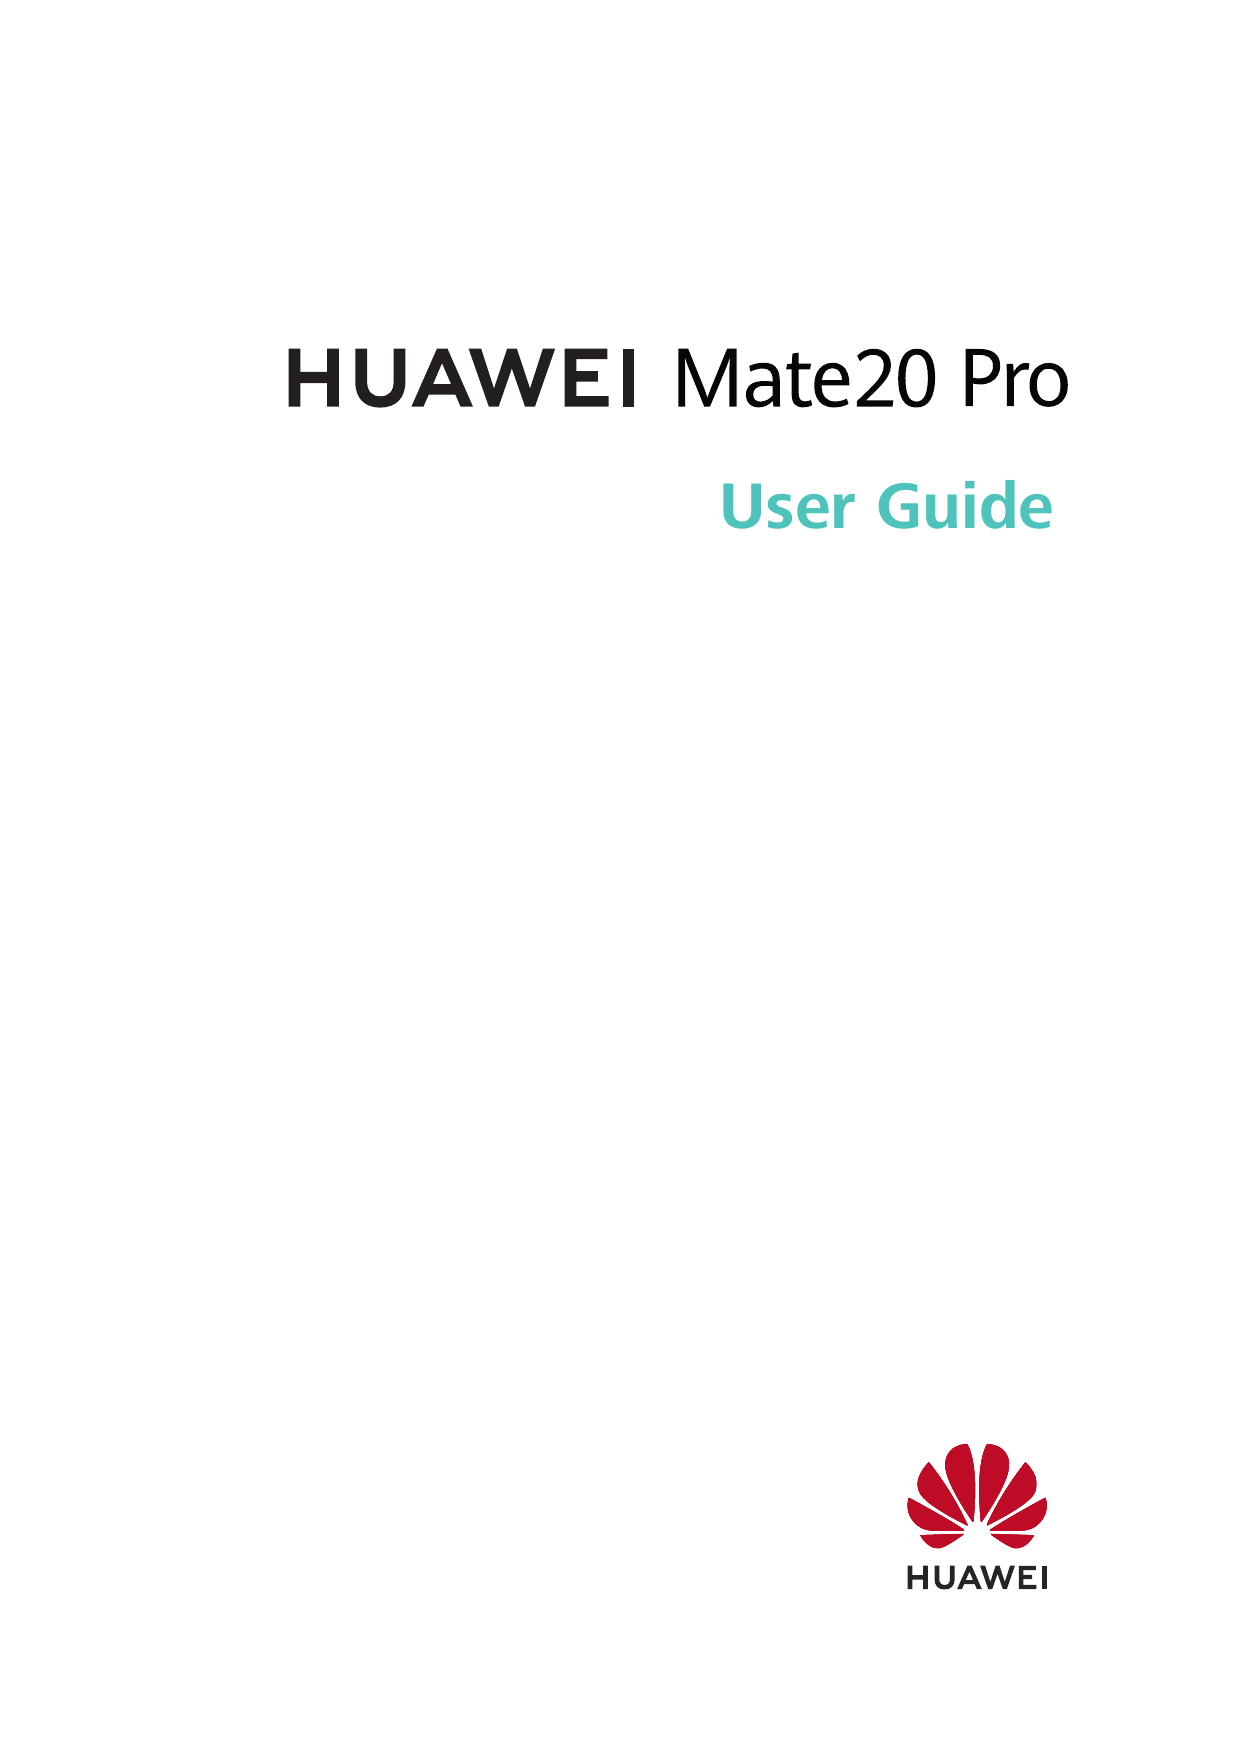 Pro User Manual Huawei Mate 20 Pro Android 9 Device Guides